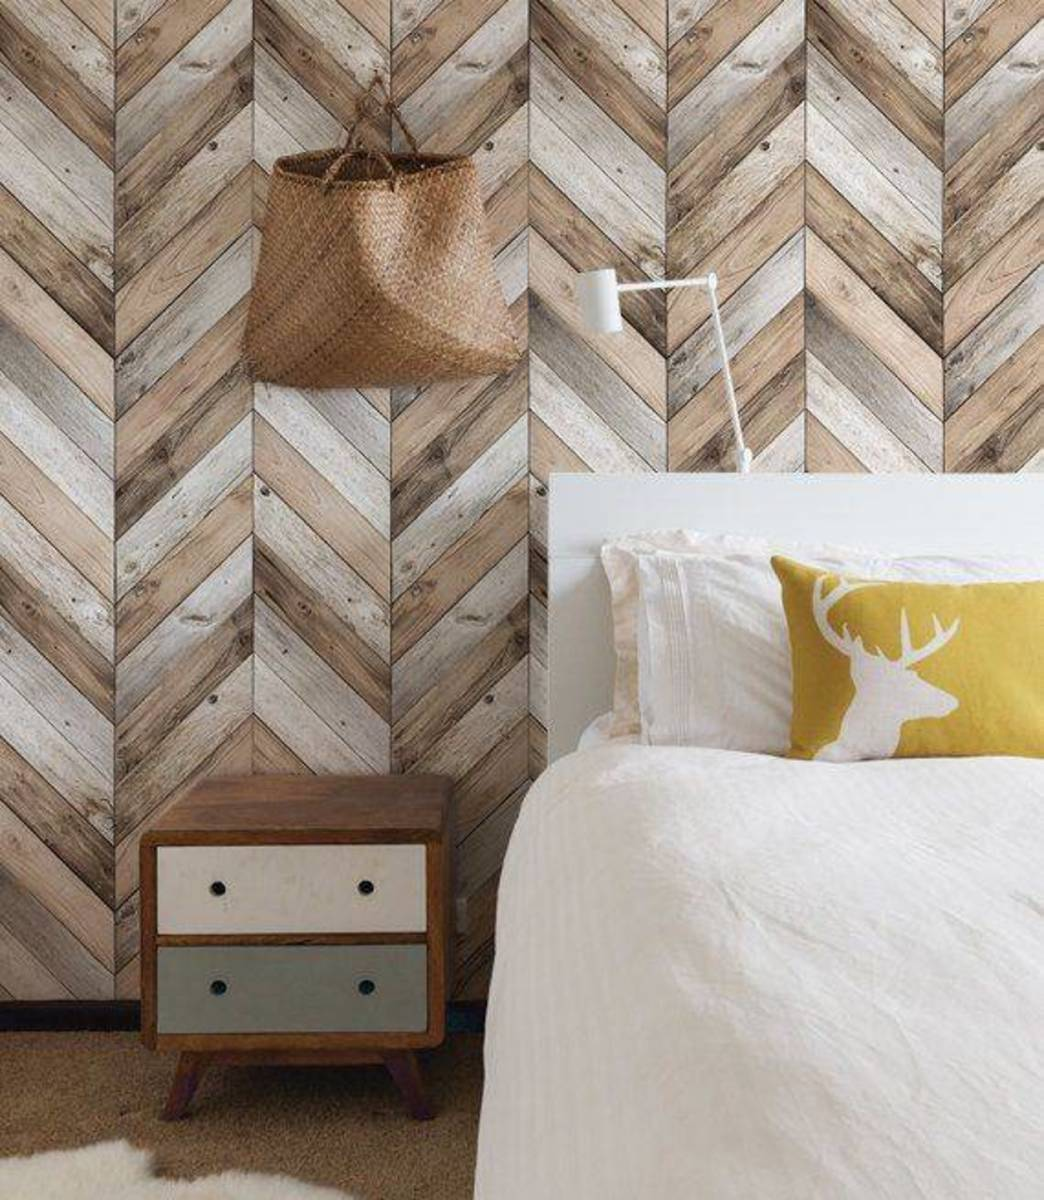 Herringbone warmth traditional wood patterns adds the décor style.